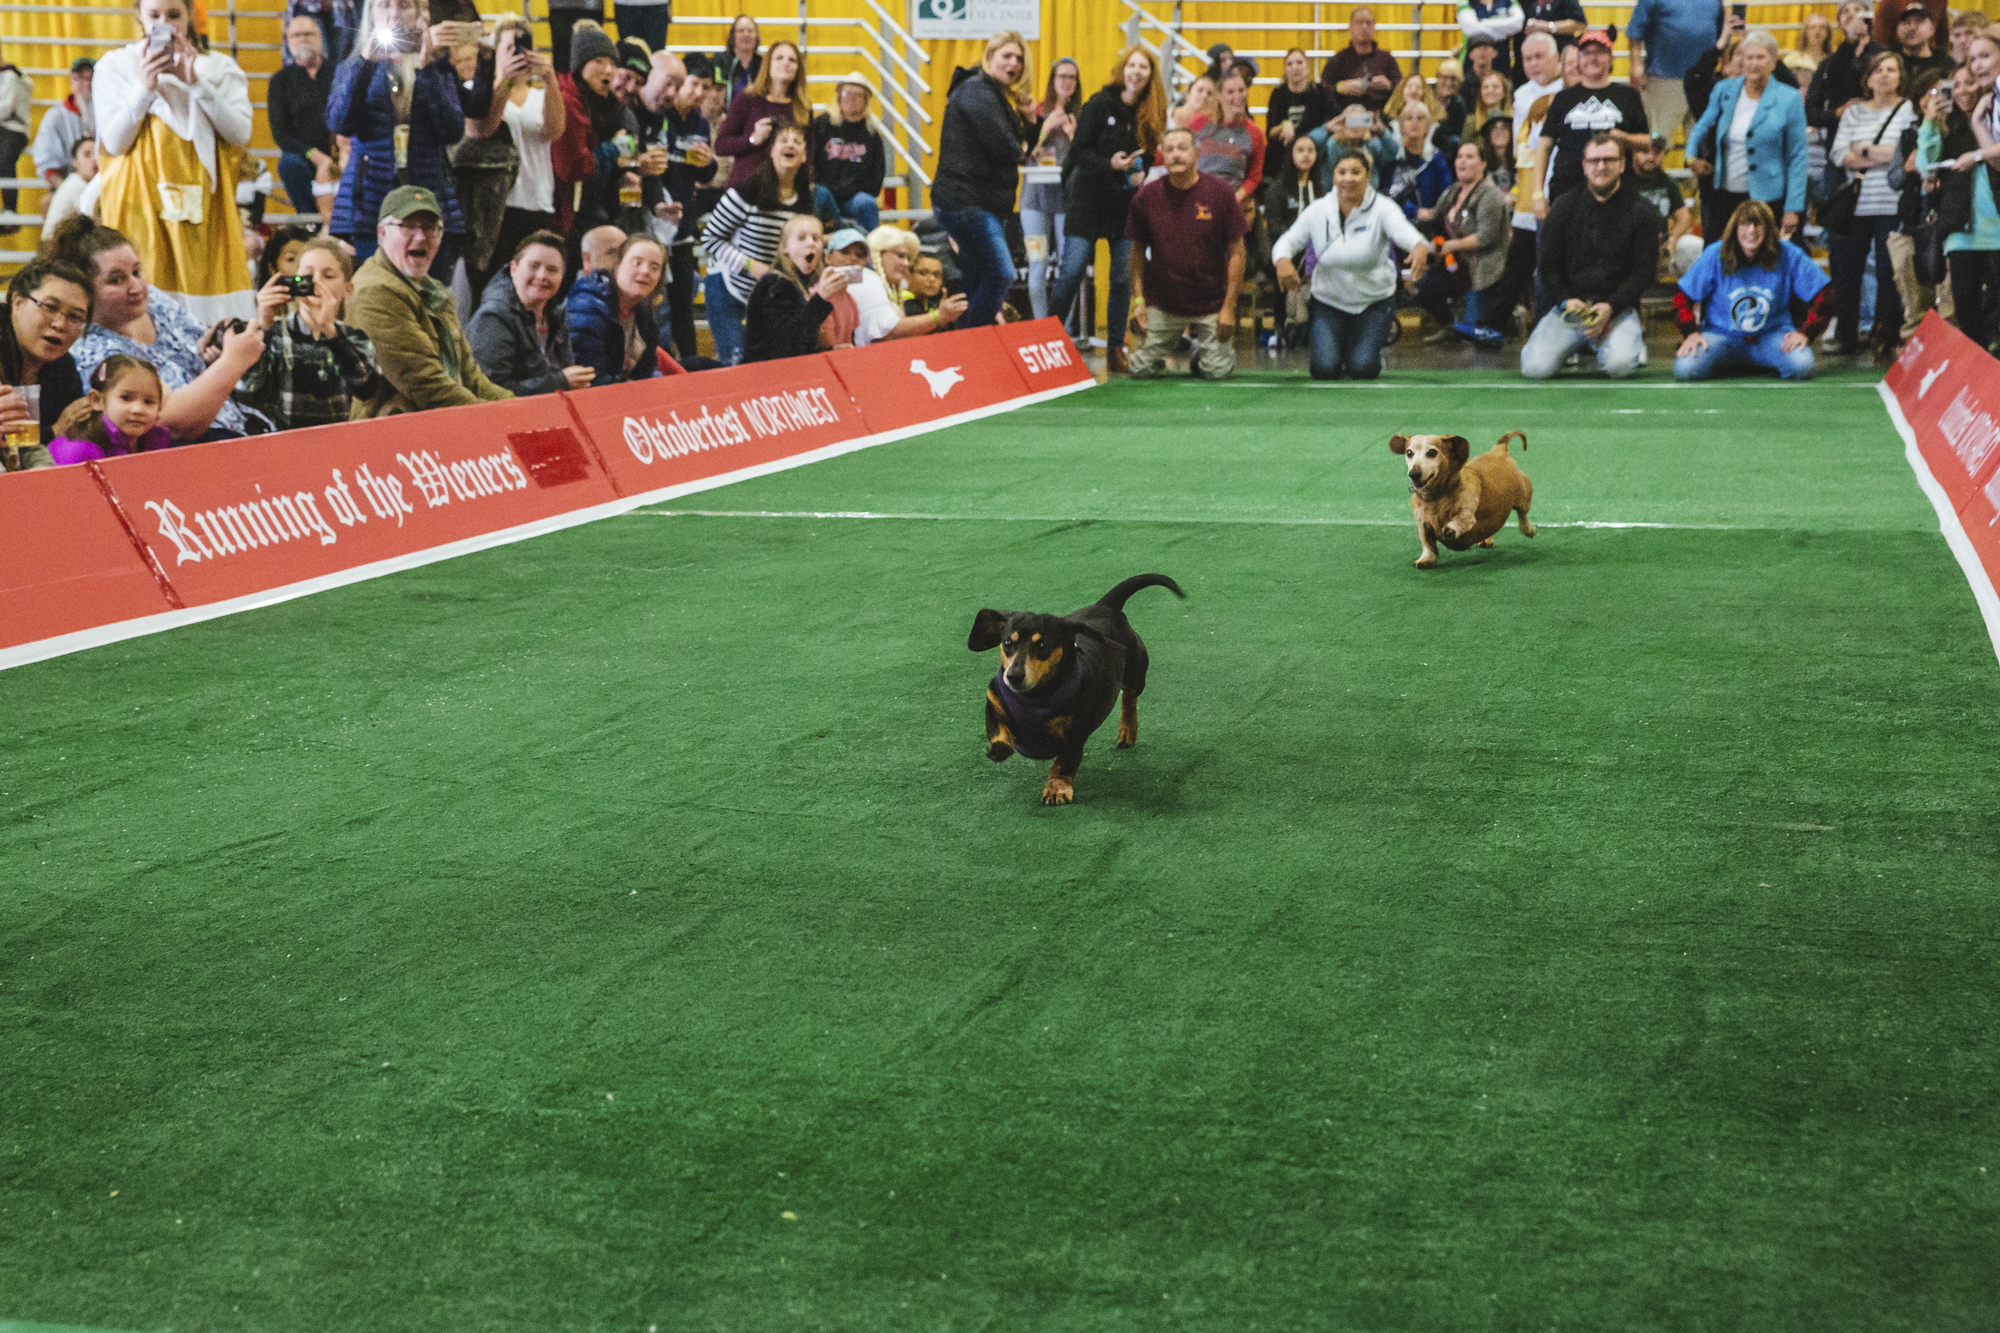 Who needs lederhosen and bier when you have Wiener dogs? Actually, we'd like all three please. These short stubby little guys totally stole the show at this weekend's Oktoberfest Northwest, where a crowds enjoyed a bevy of entertainment, food and music at the Washington State Fair Playgrounds. (Image: Sunita Martini / Seattle Refined)